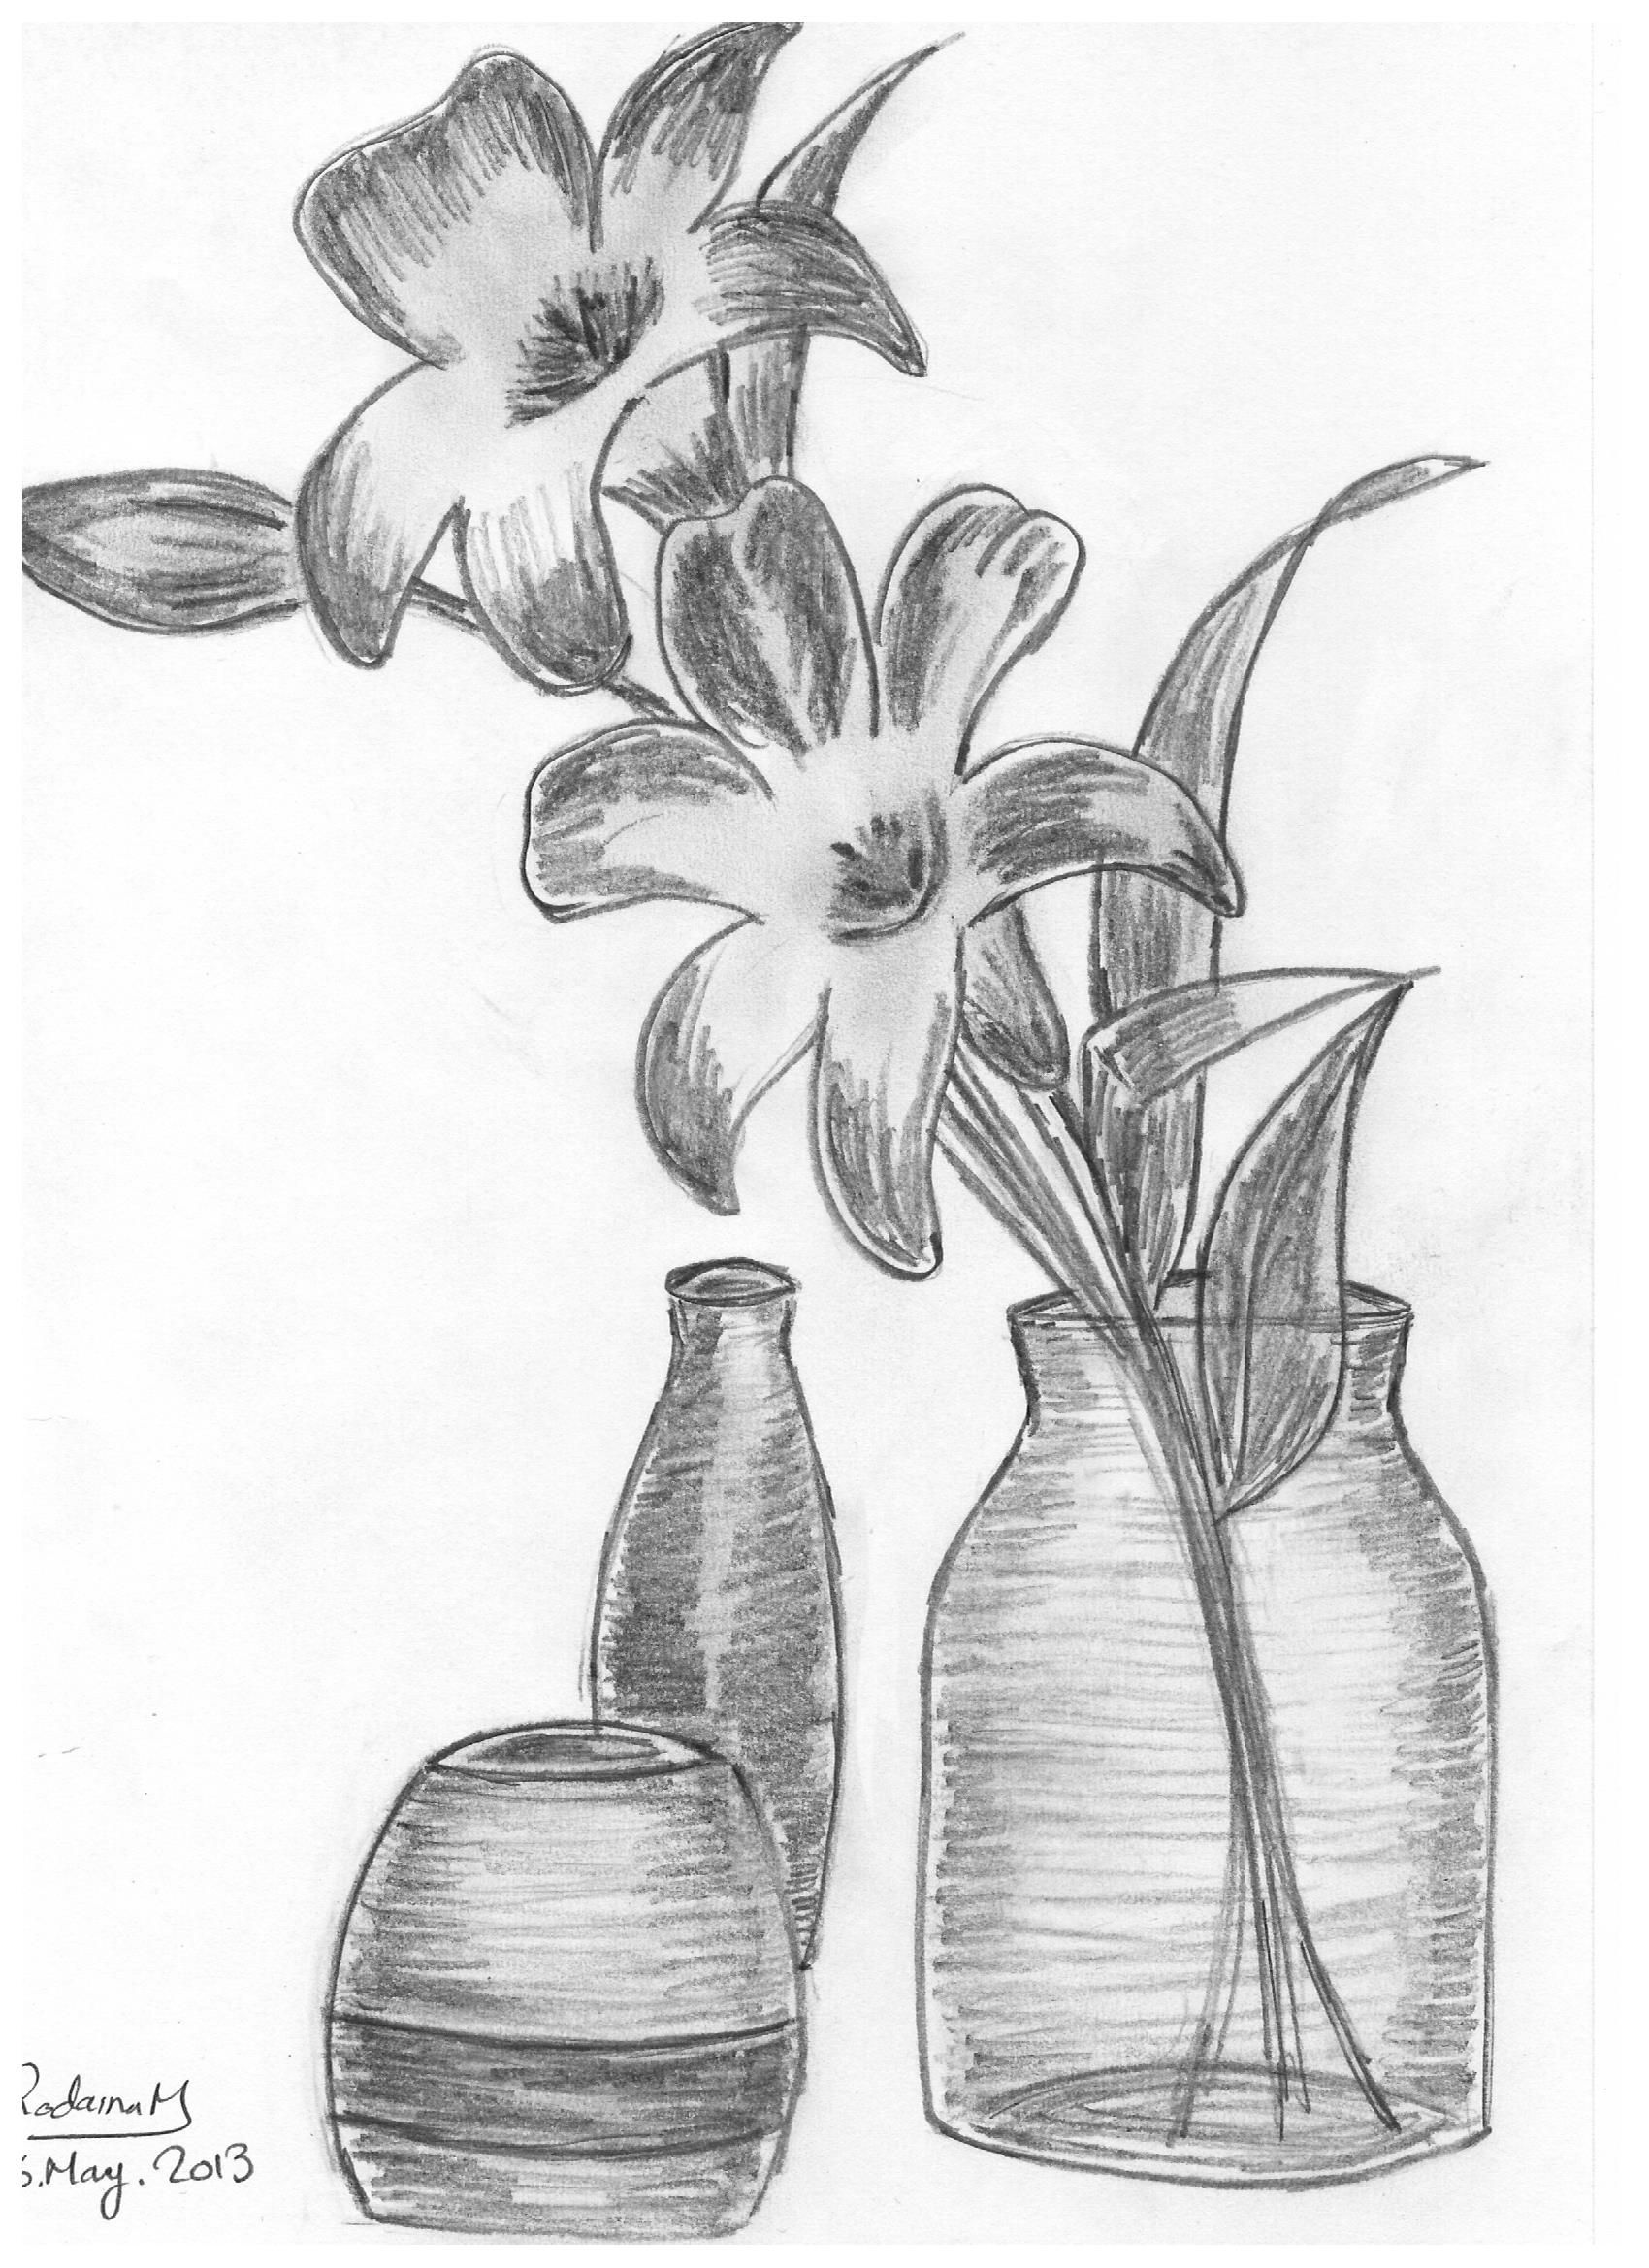 Vase With Roses Drawn In 2013 Vase Flowers Roses Pencil Sketch Pencil Drawings Of Flowers Drawings Rose Sketch